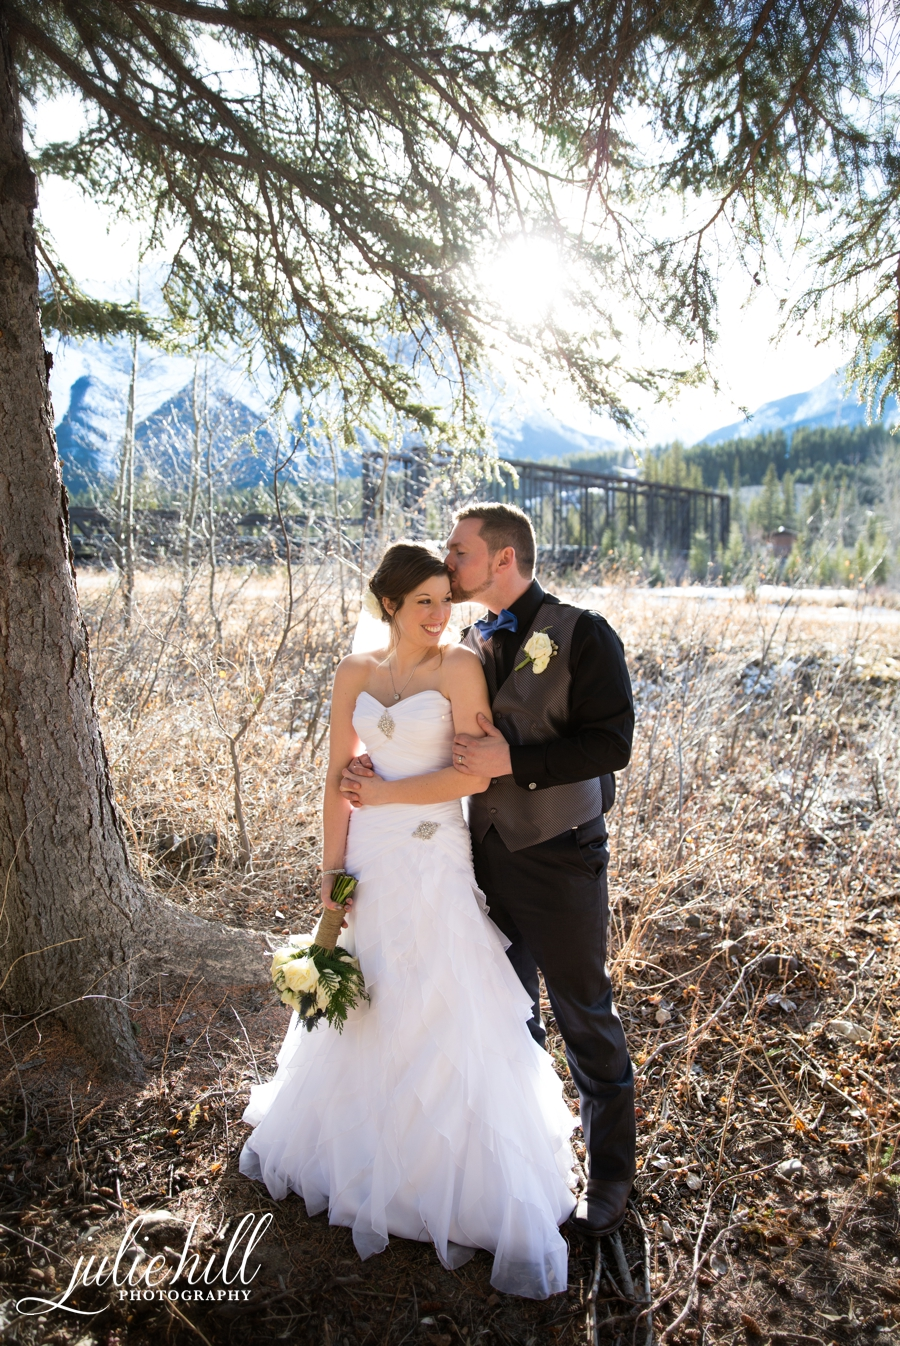 Julie-Hill-Photography-Canmore-Iron-Railway-Bridge-Romantic-Wedding-Winter-Canmore-Golf-Curling-Club-Sun-Flare-Photo